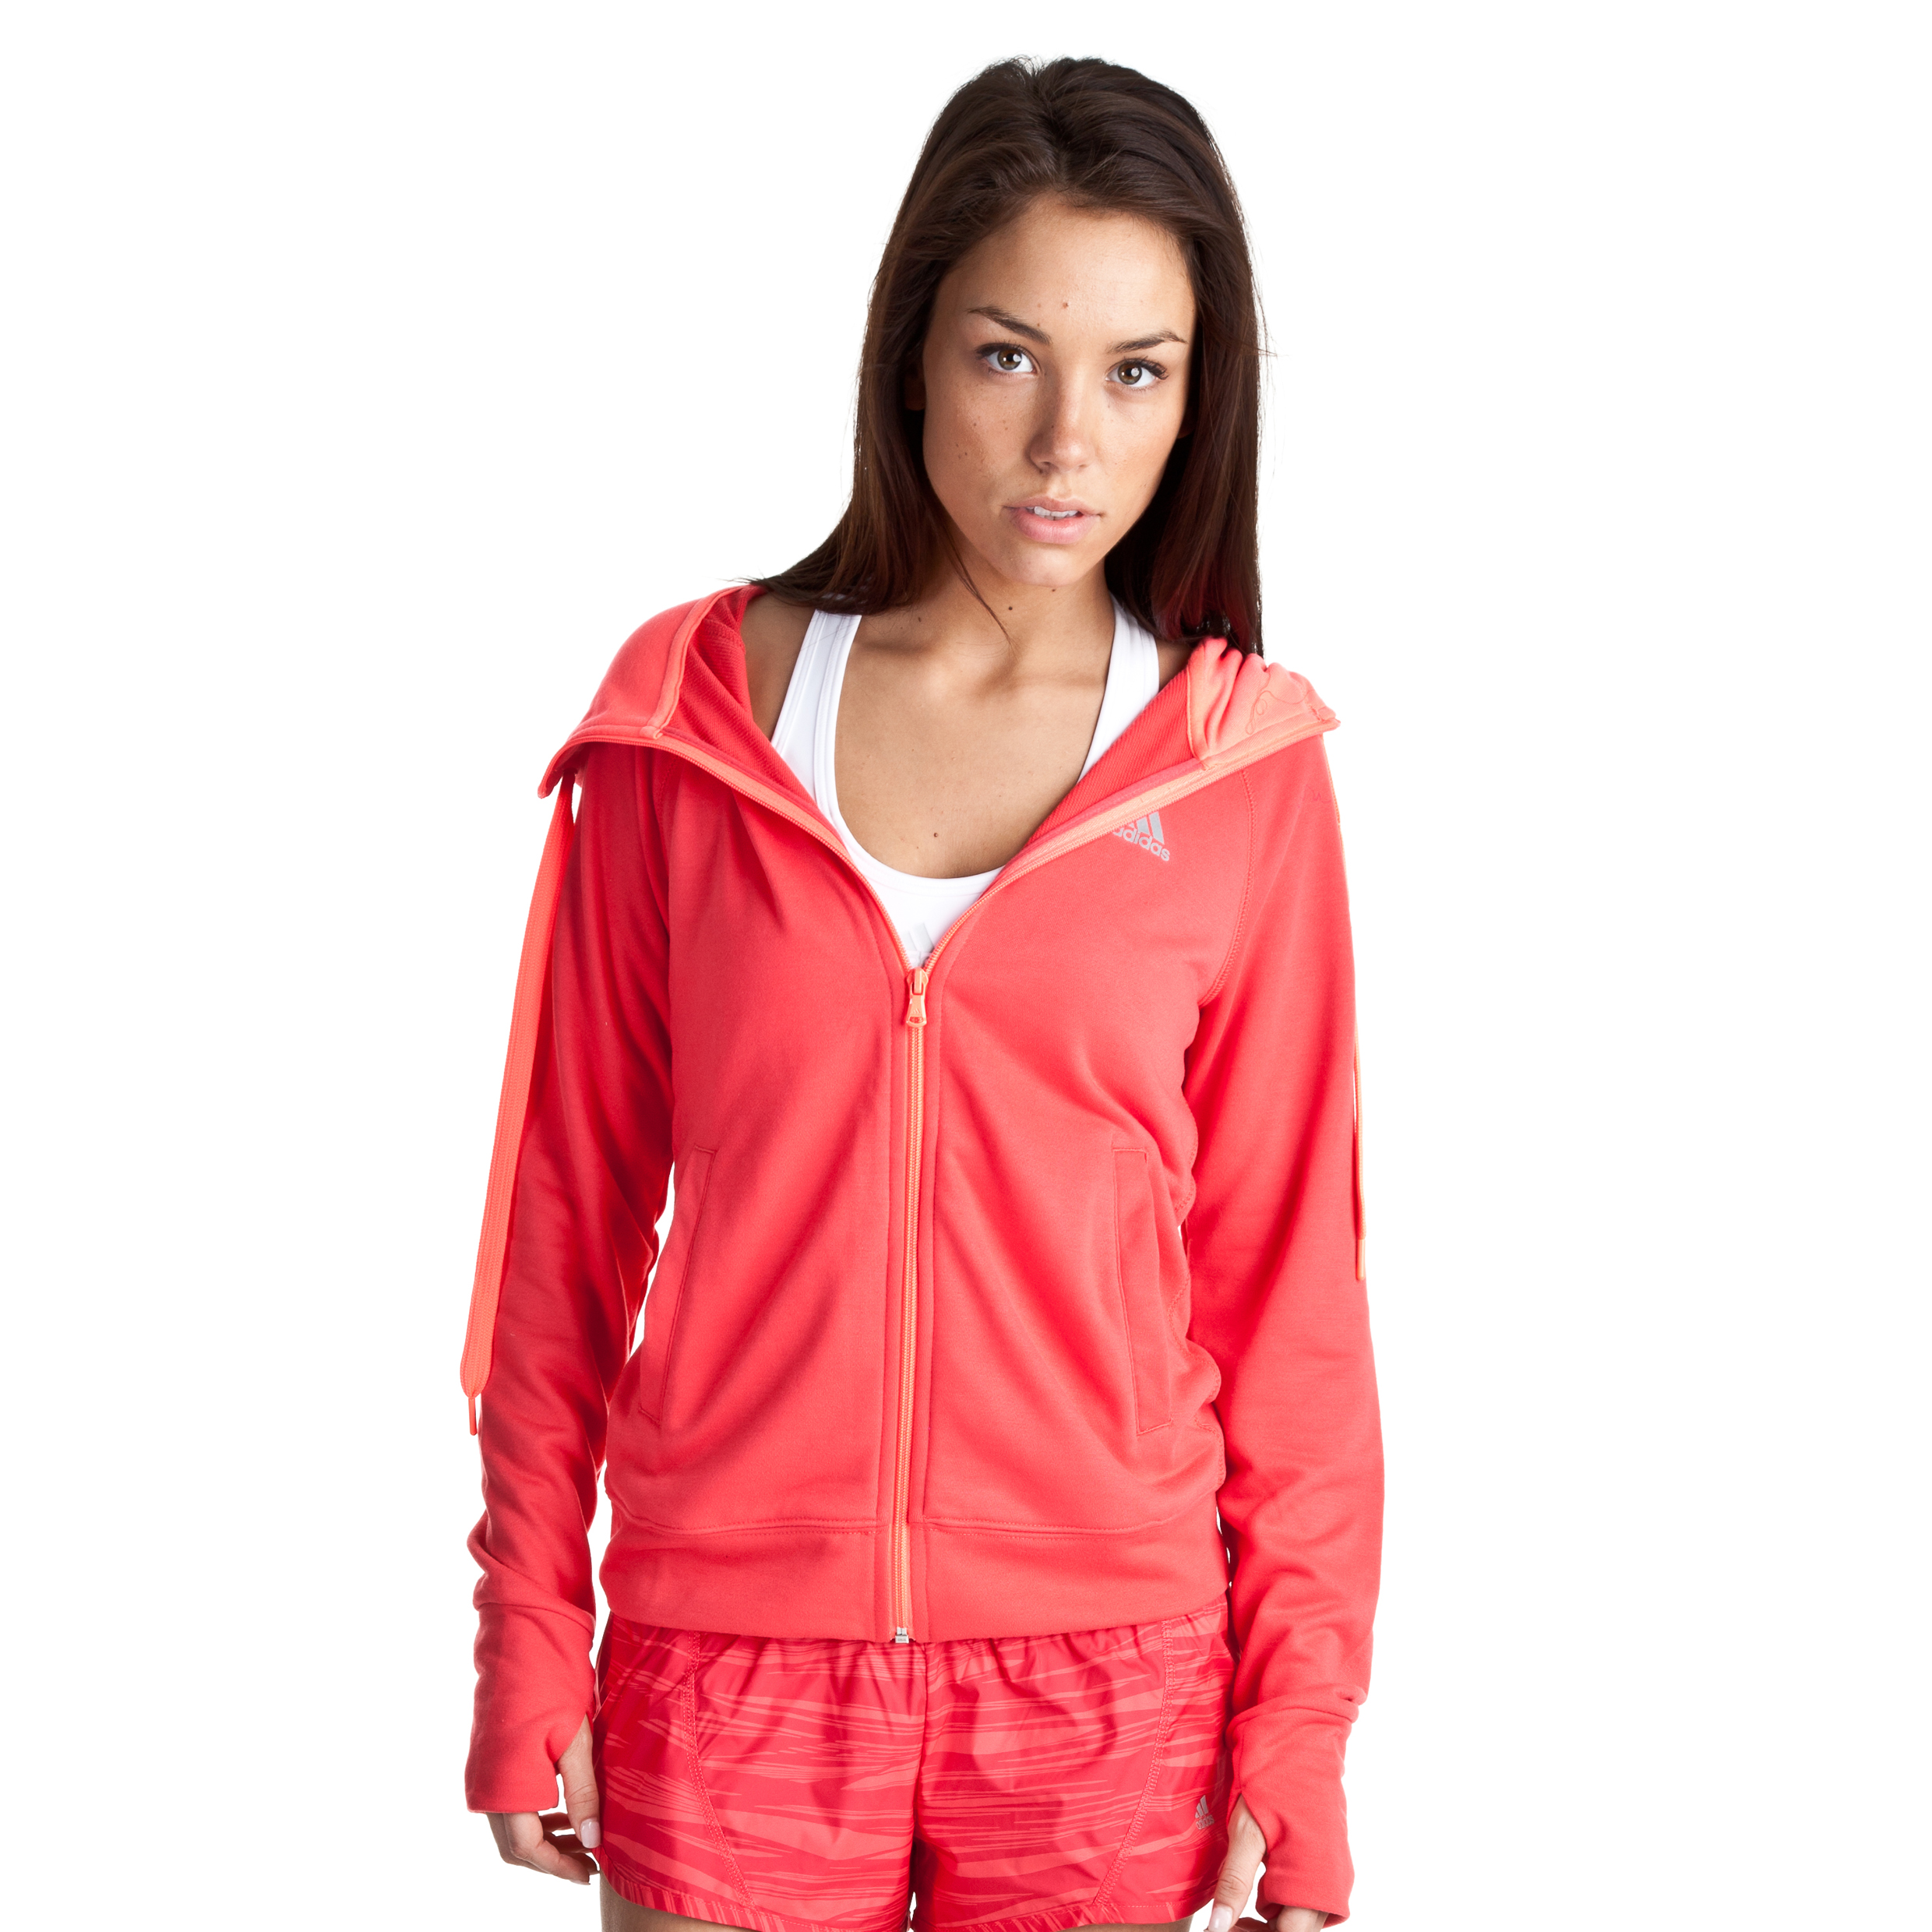 Adidas Prime Hooded Jacket - Joy S13/Refl.Silver - Womens